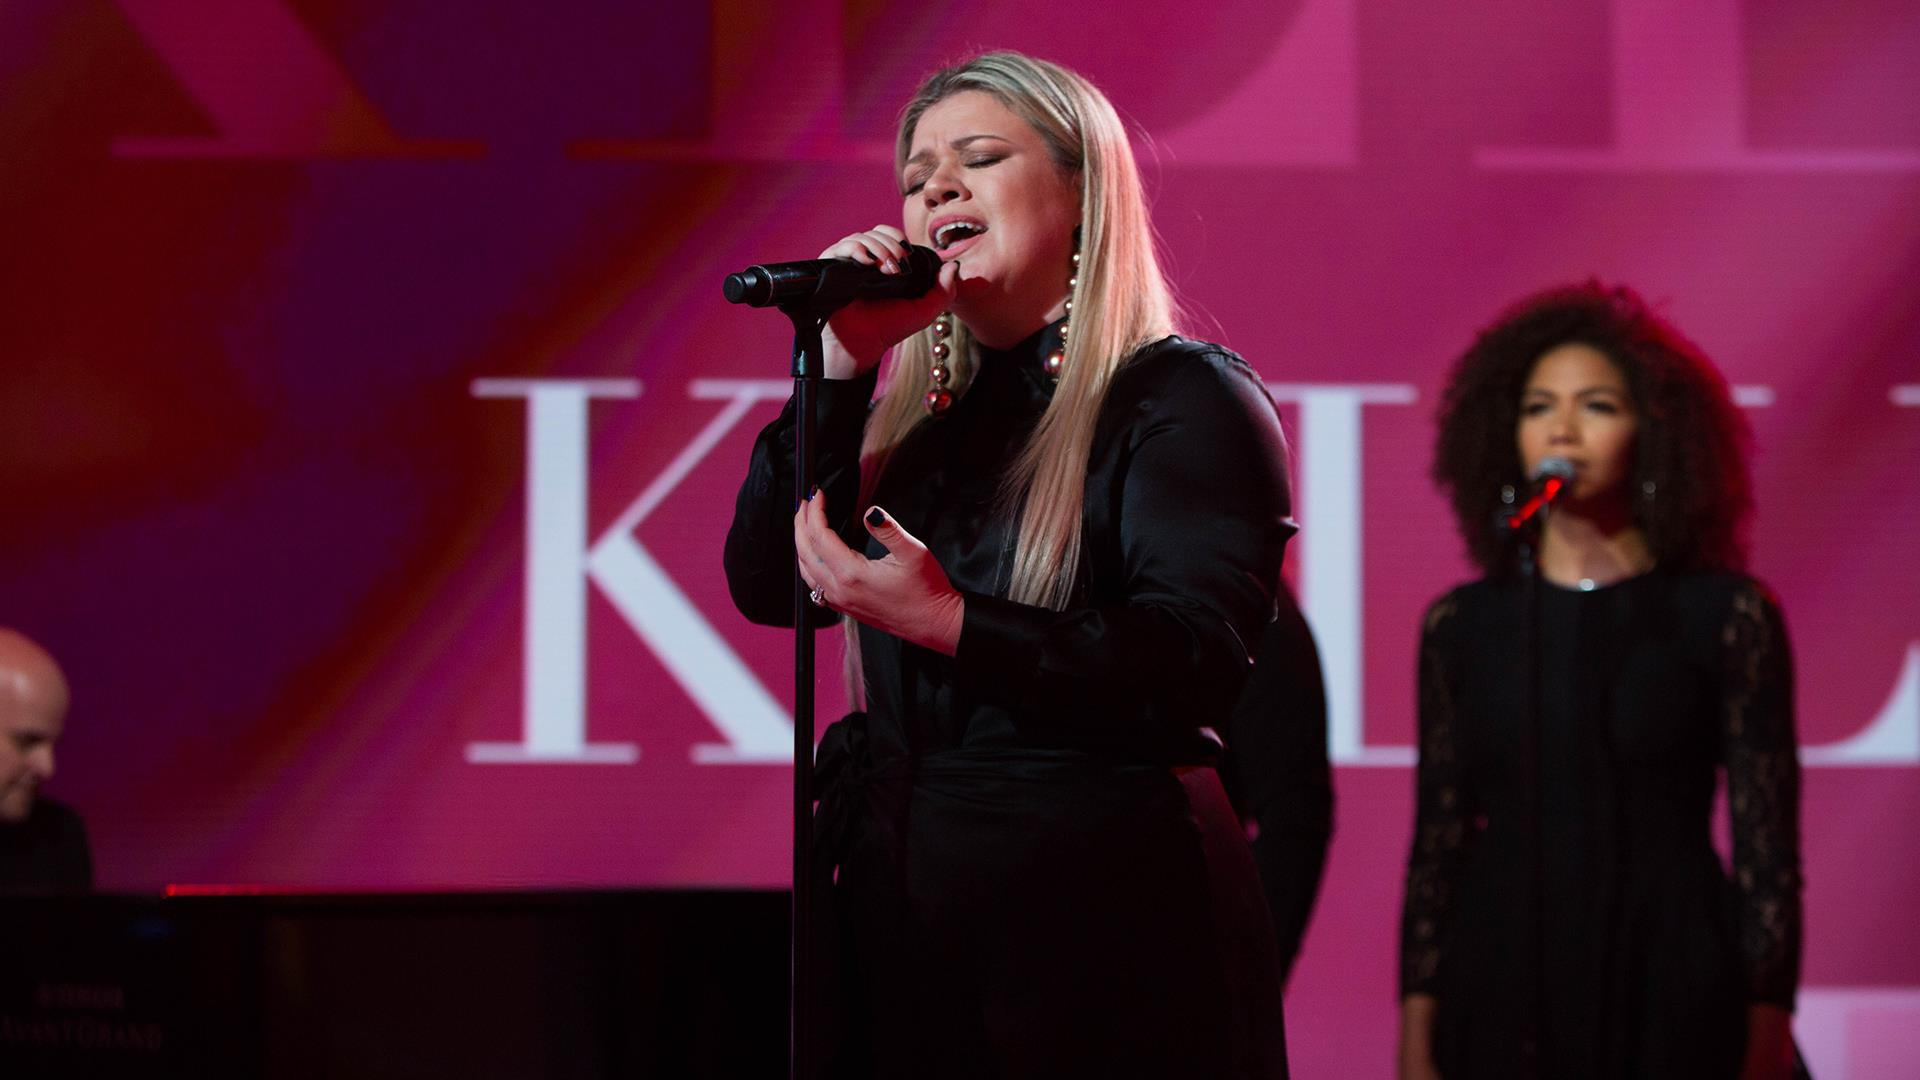 See Kelly Clarkson perform \'I Don\'t Think About You\' live on TODAY